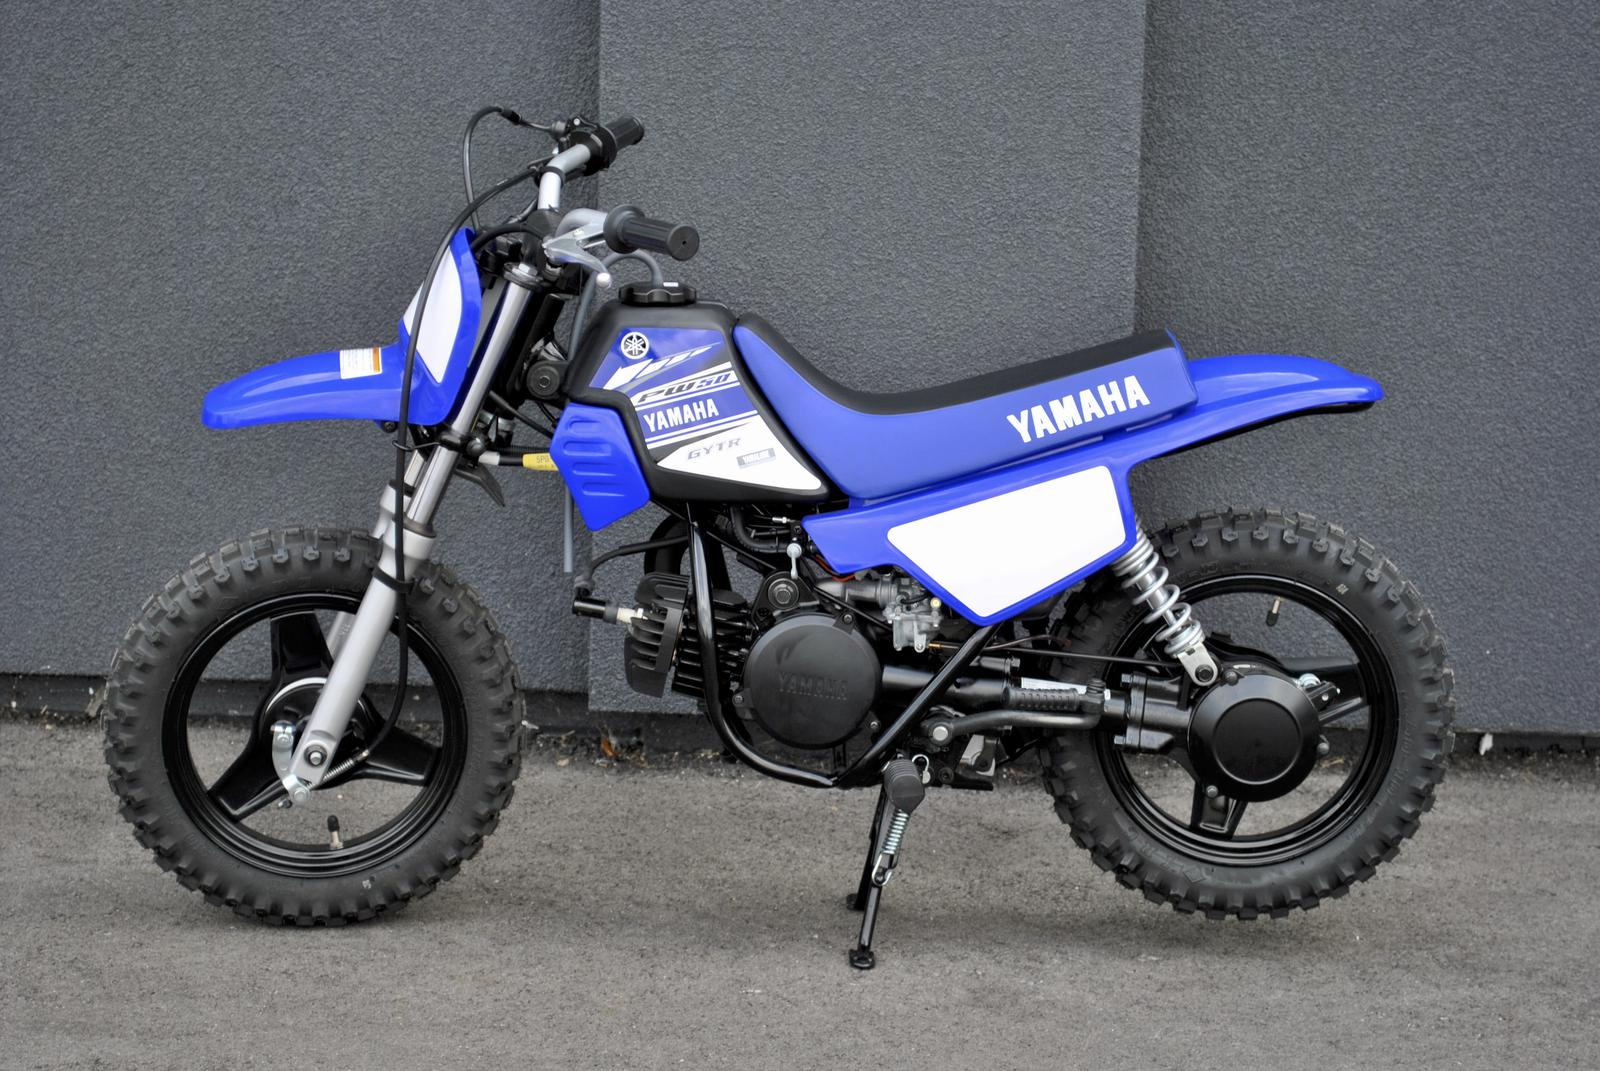 2017 Yamaha PW 50 for sale in Indianapolis, IN. Flat Out Motorsports ...